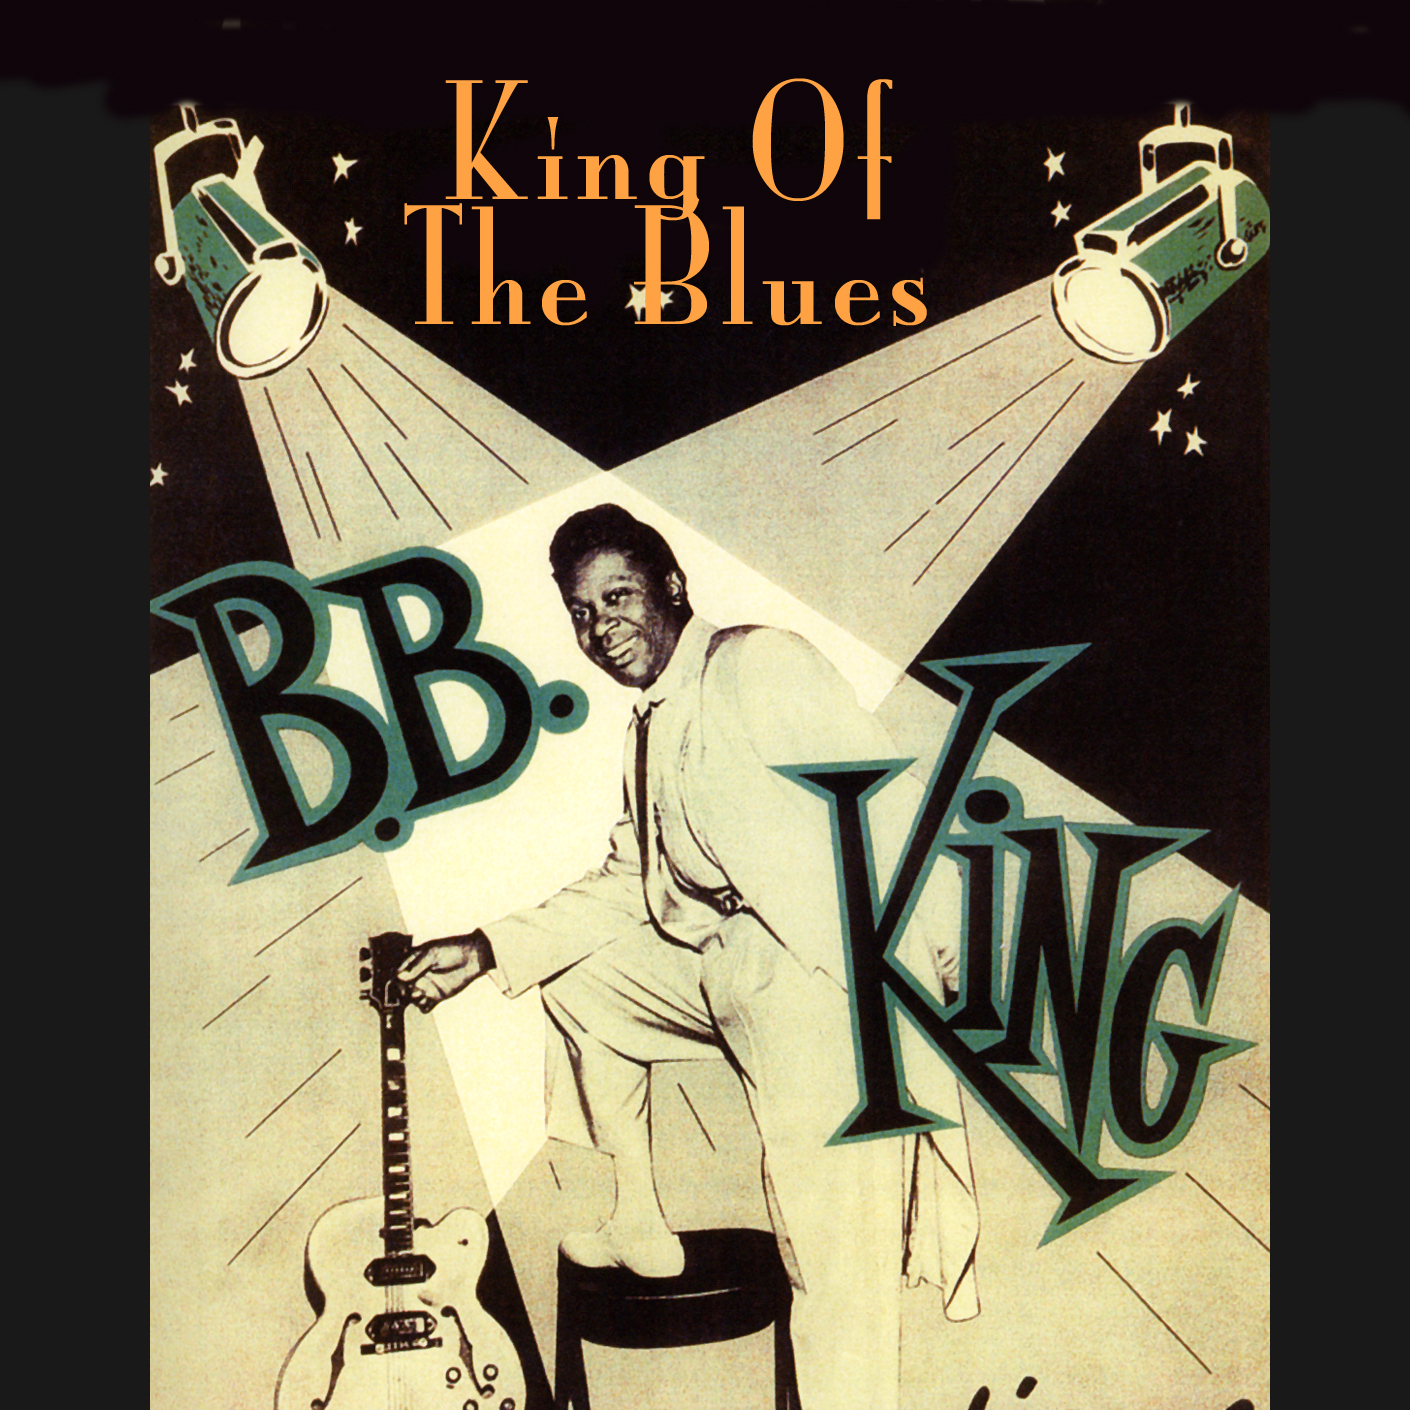 b b king king of the blues cd cleopatra records store. Black Bedroom Furniture Sets. Home Design Ideas